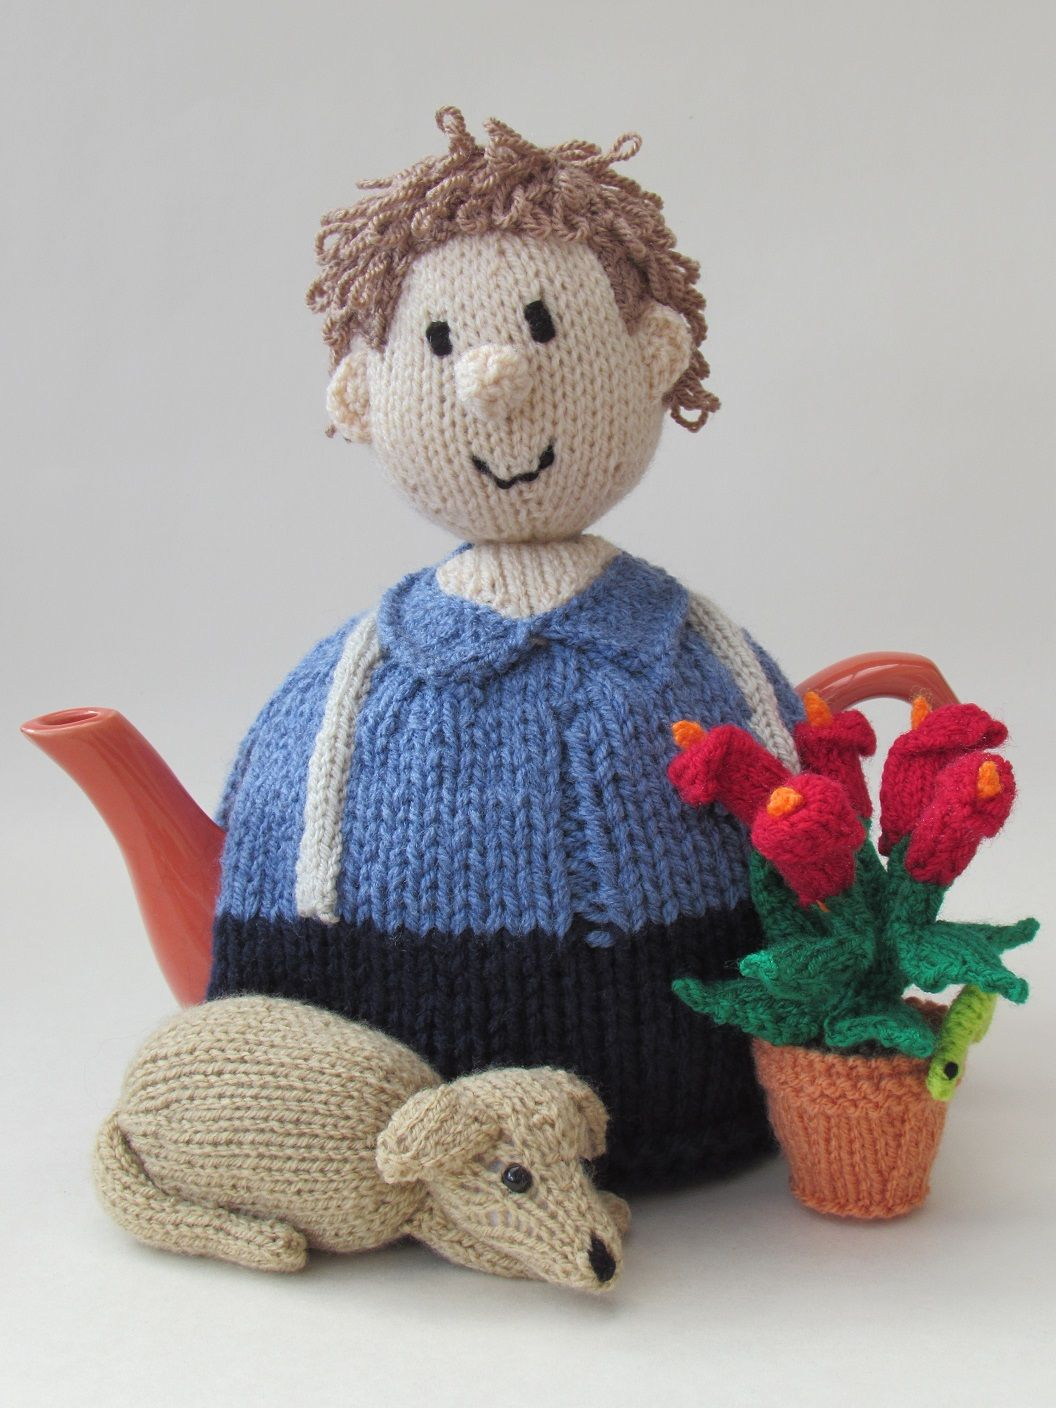 New gardener tea cosy design from teacosyfolk httpwww you can buy the gardener tea cosy as a finished hand crafted tea cosy or as a gardener tea cosy knitting pattern bankloansurffo Images